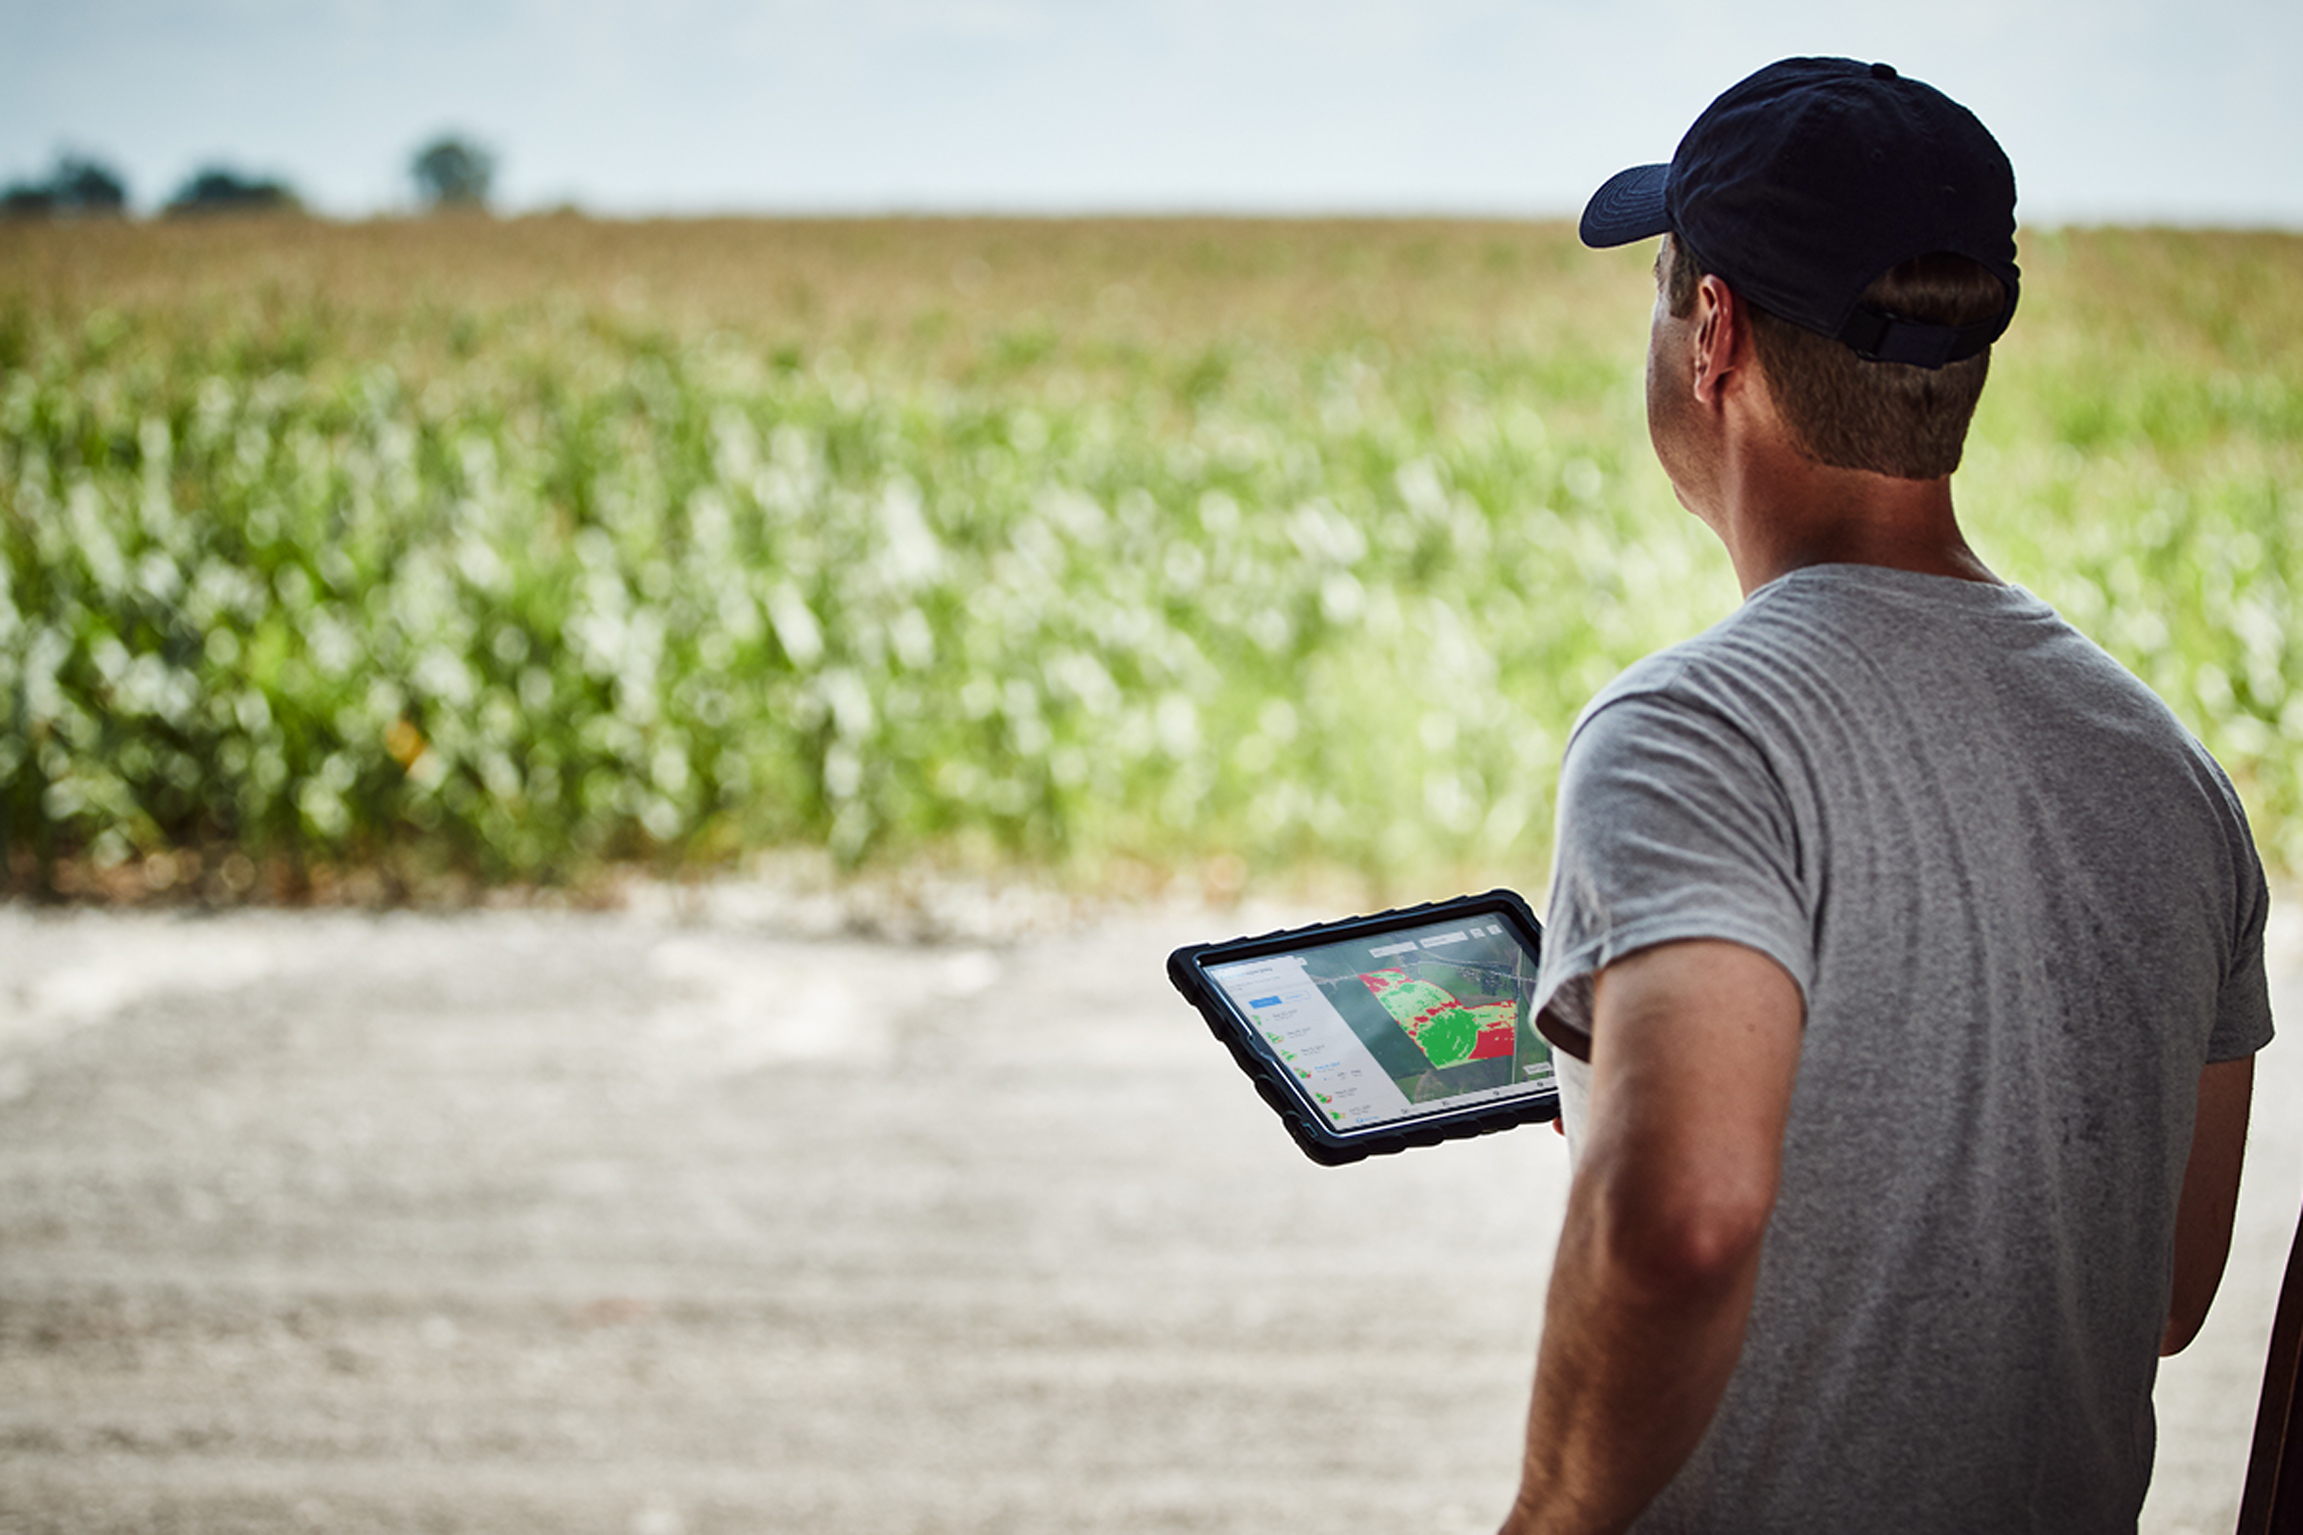 Securing your farm against cyber attacks